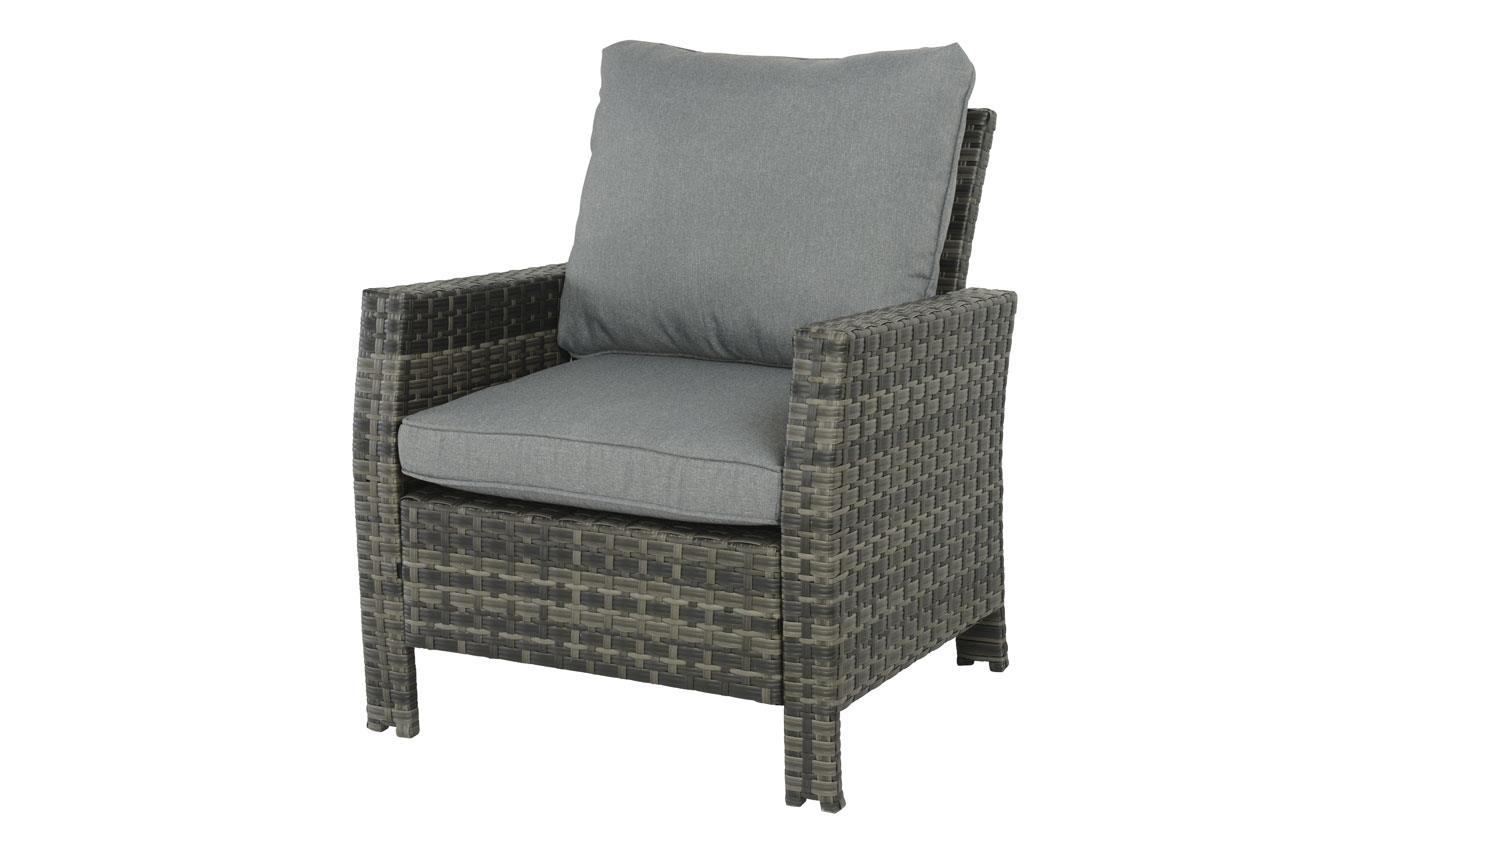 sessel madison outdoor lounge chair in polyrattan grau braun. Black Bedroom Furniture Sets. Home Design Ideas